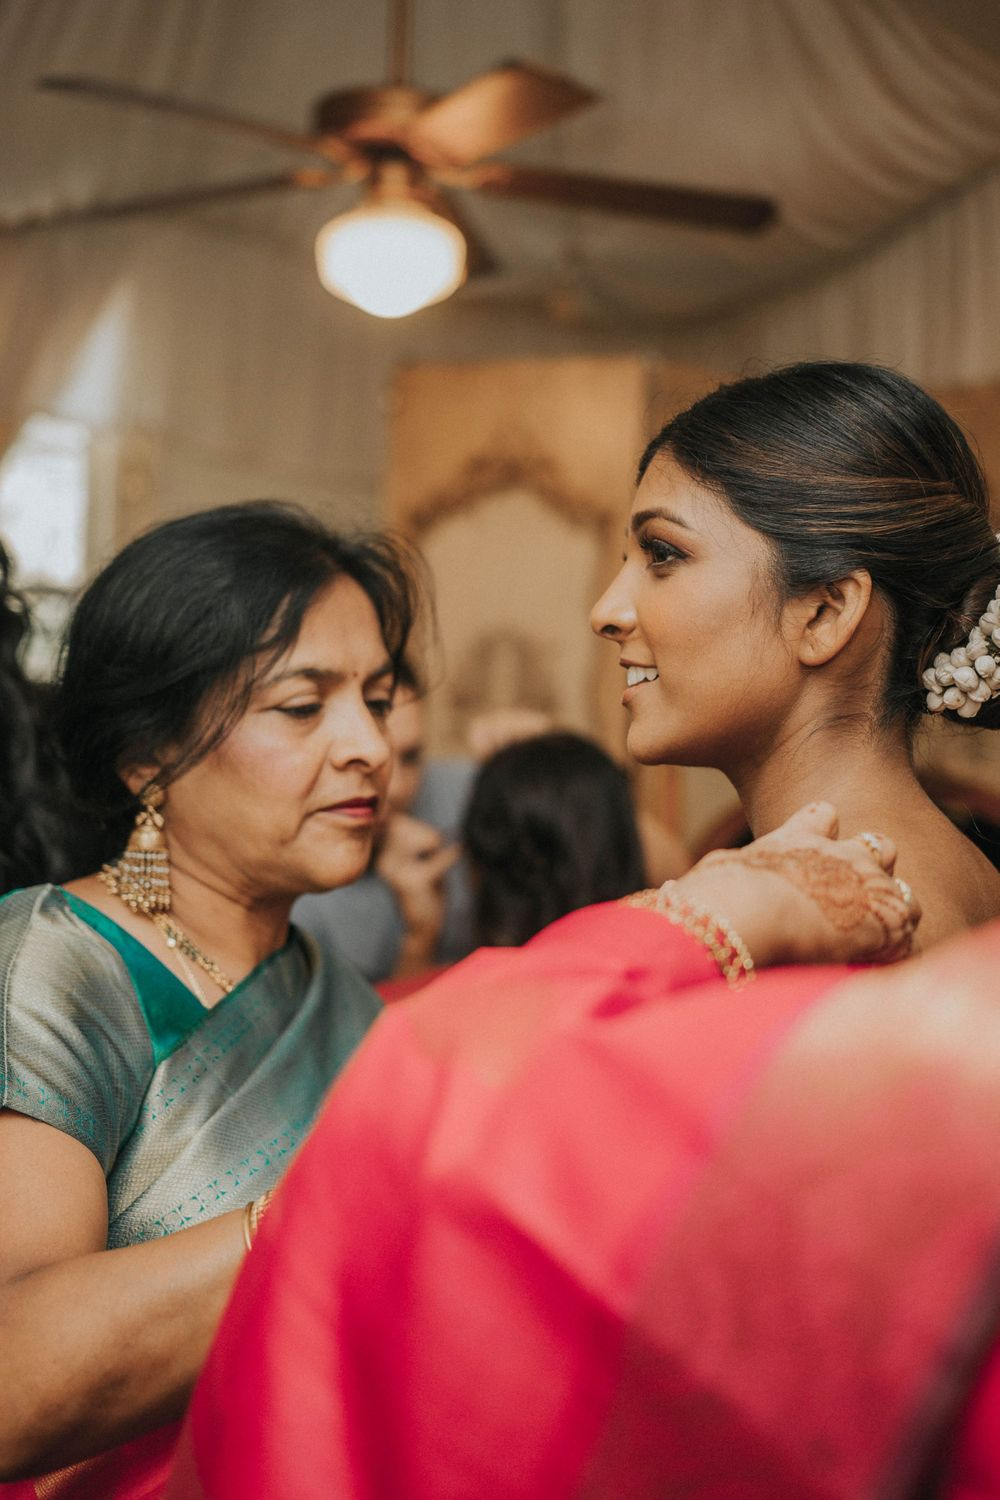 rebecca skidgel photography grand island mansion indian wedding bride getting ready